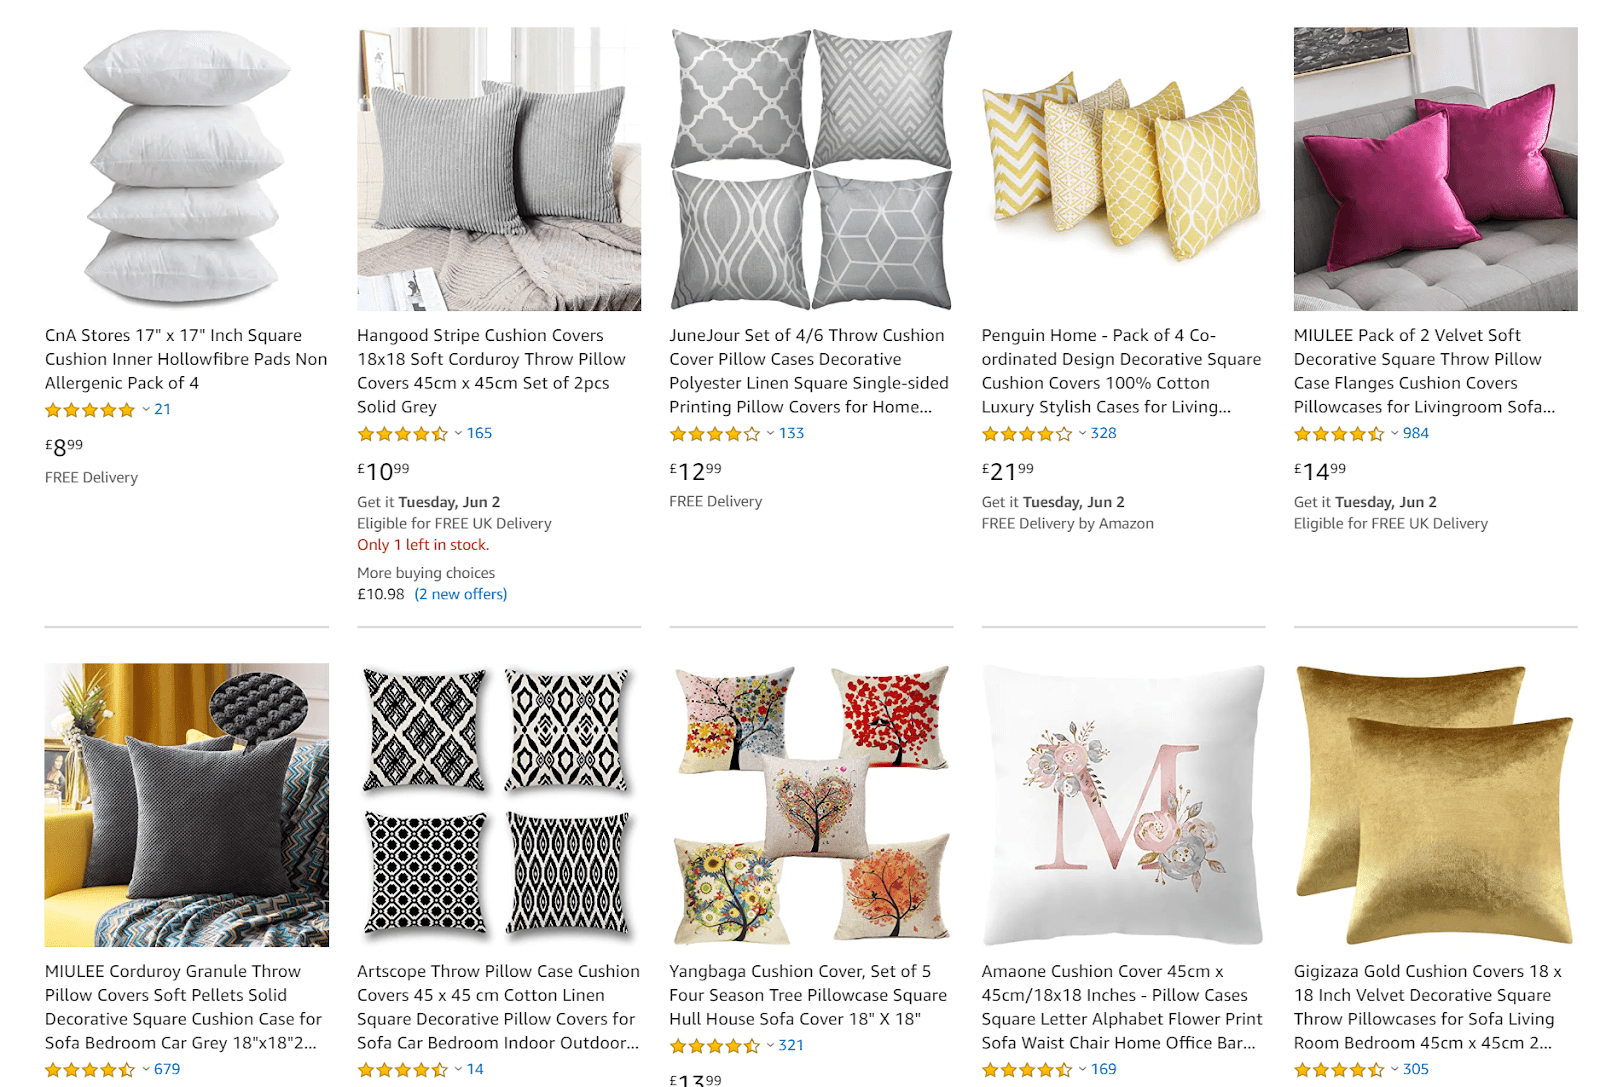 examples of amazon listings of pillows used in decorated settings